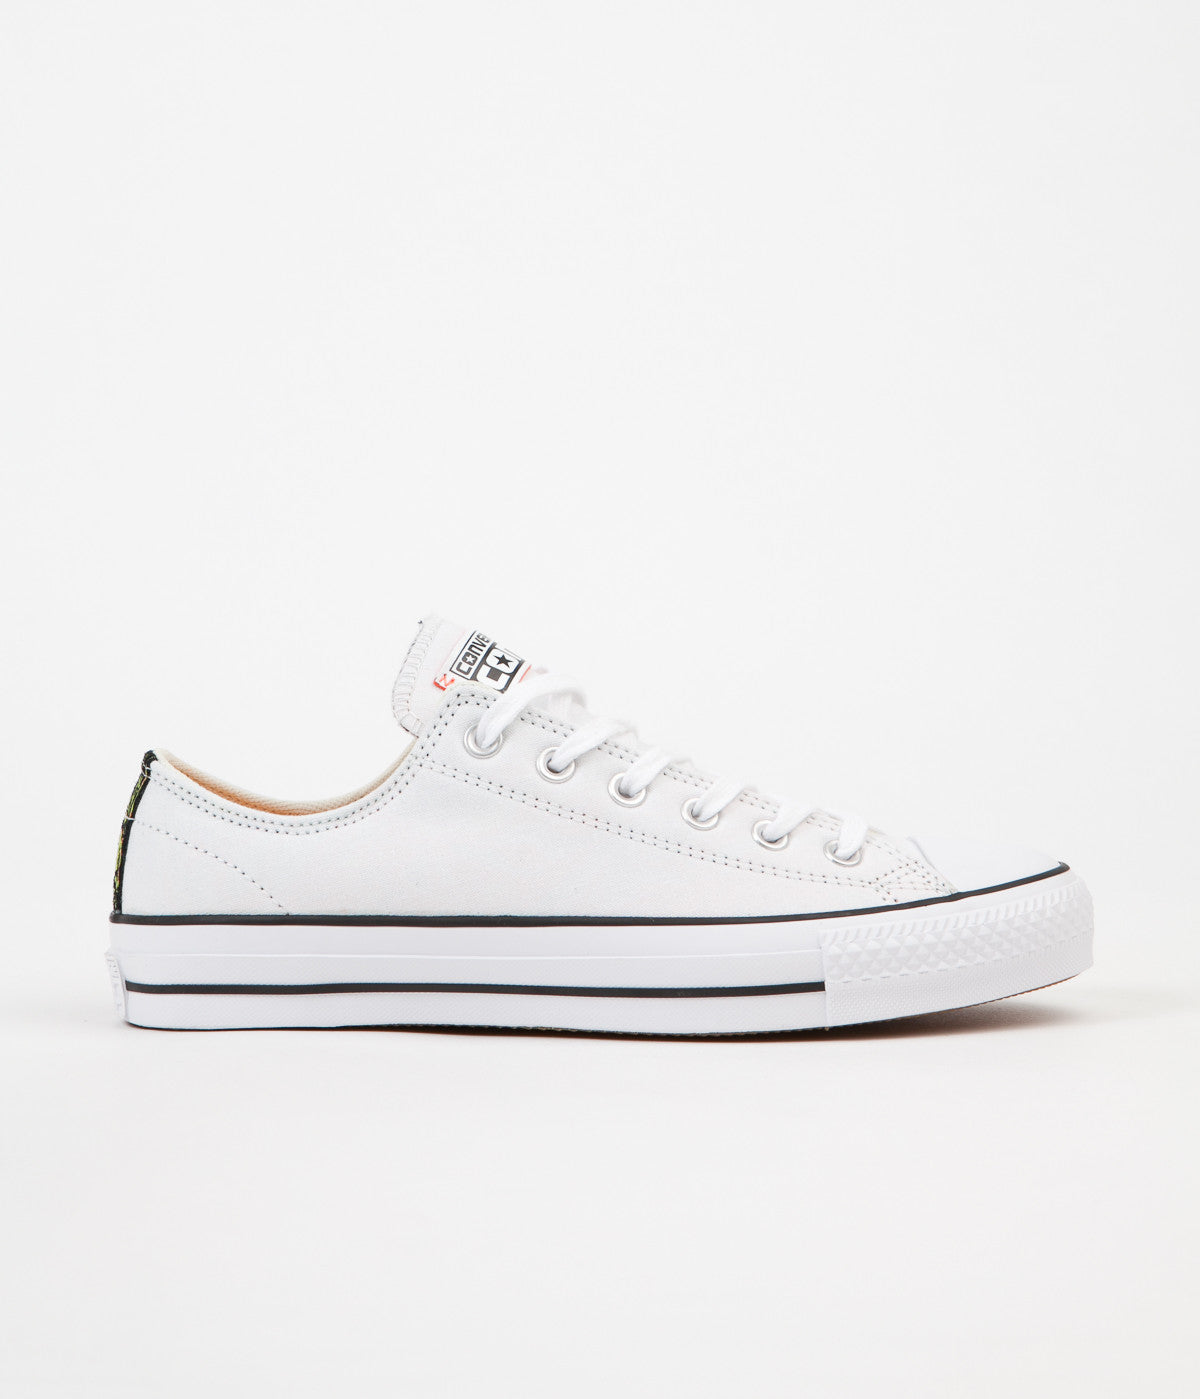 Converse CTAS Pro Ox Shoes - White / Hyper Orange / Black